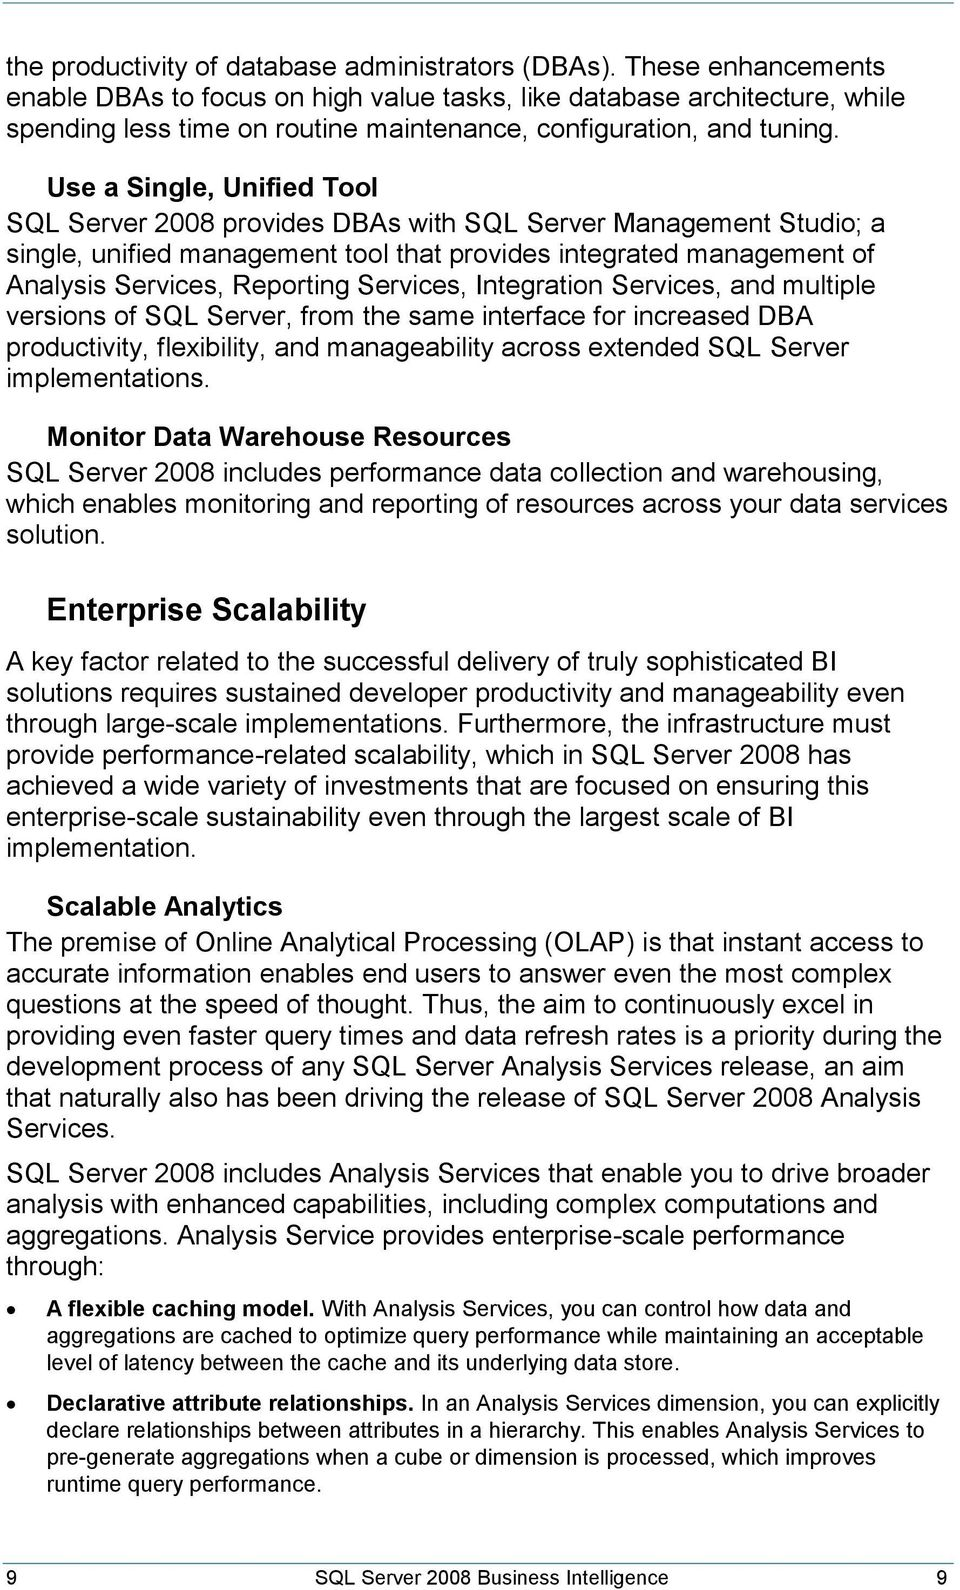 Use a Single, Unified Tool SQL Server 2008 provides DBAs with SQL Server Management Studio; a single, unified management tool that provides integrated management of Analysis Services, Reporting